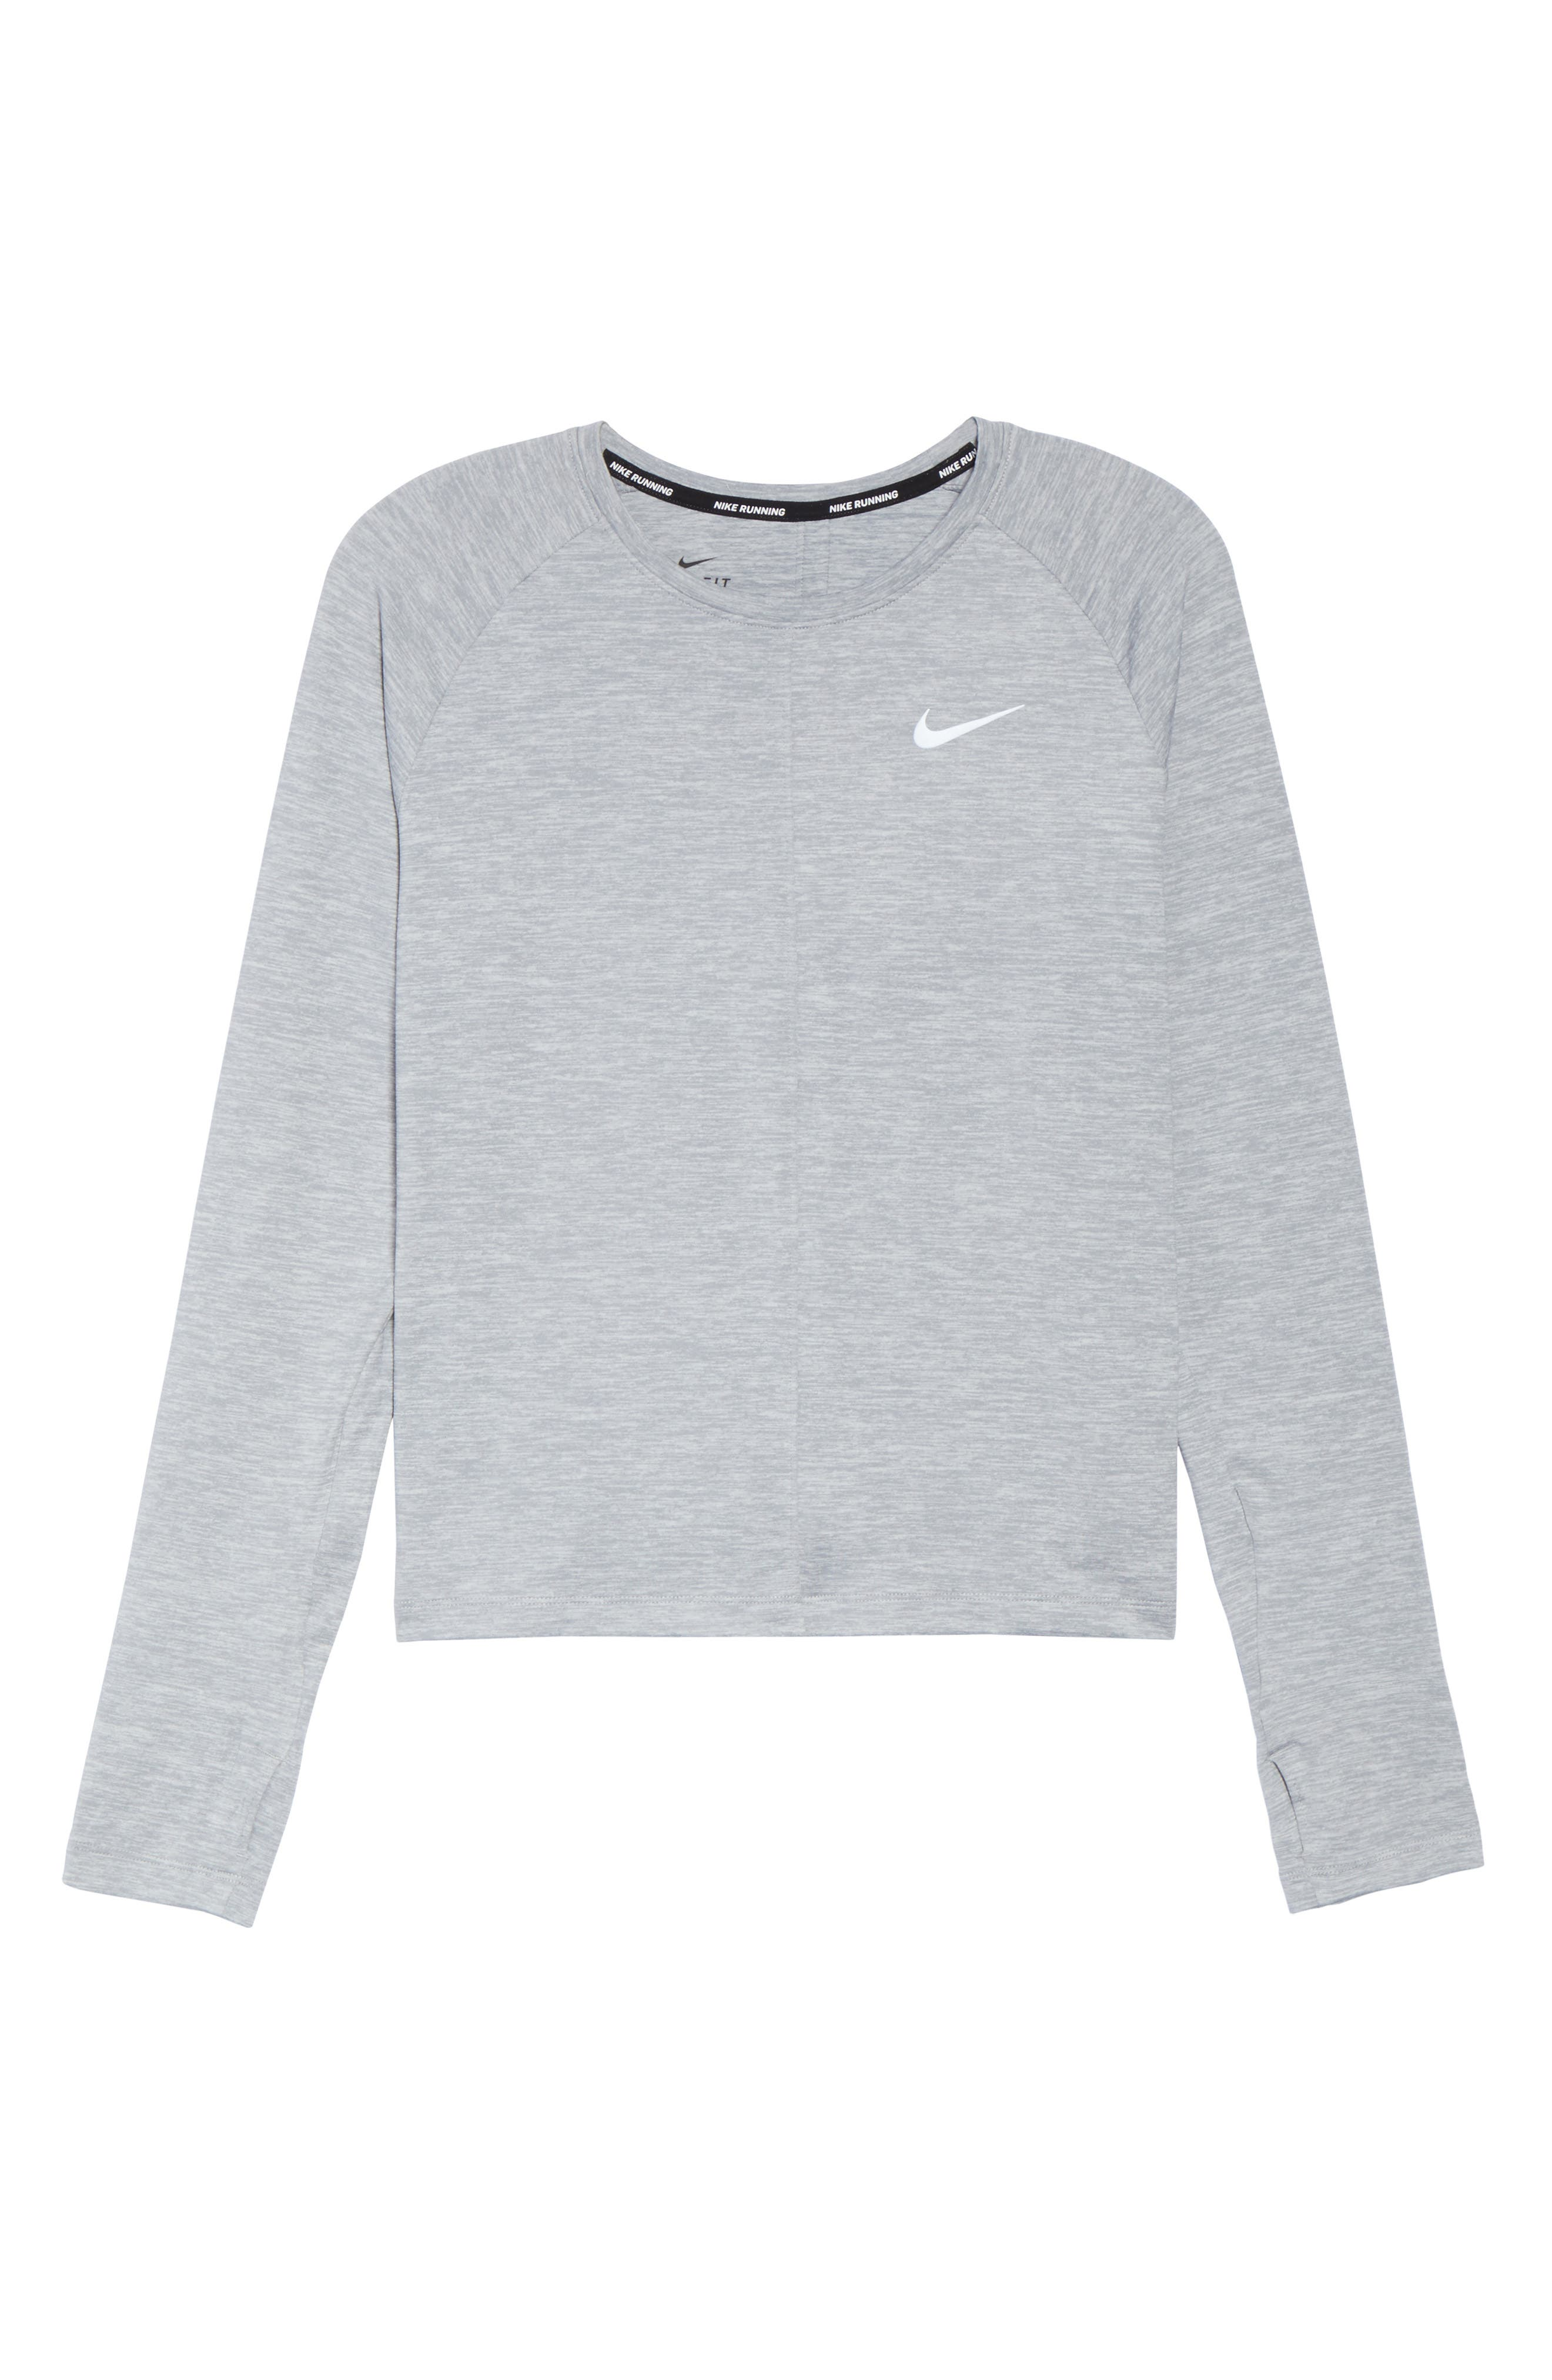 Dry Element Crop Top,                             Alternate thumbnail 7, color,                             Wolf Grey/ Heather